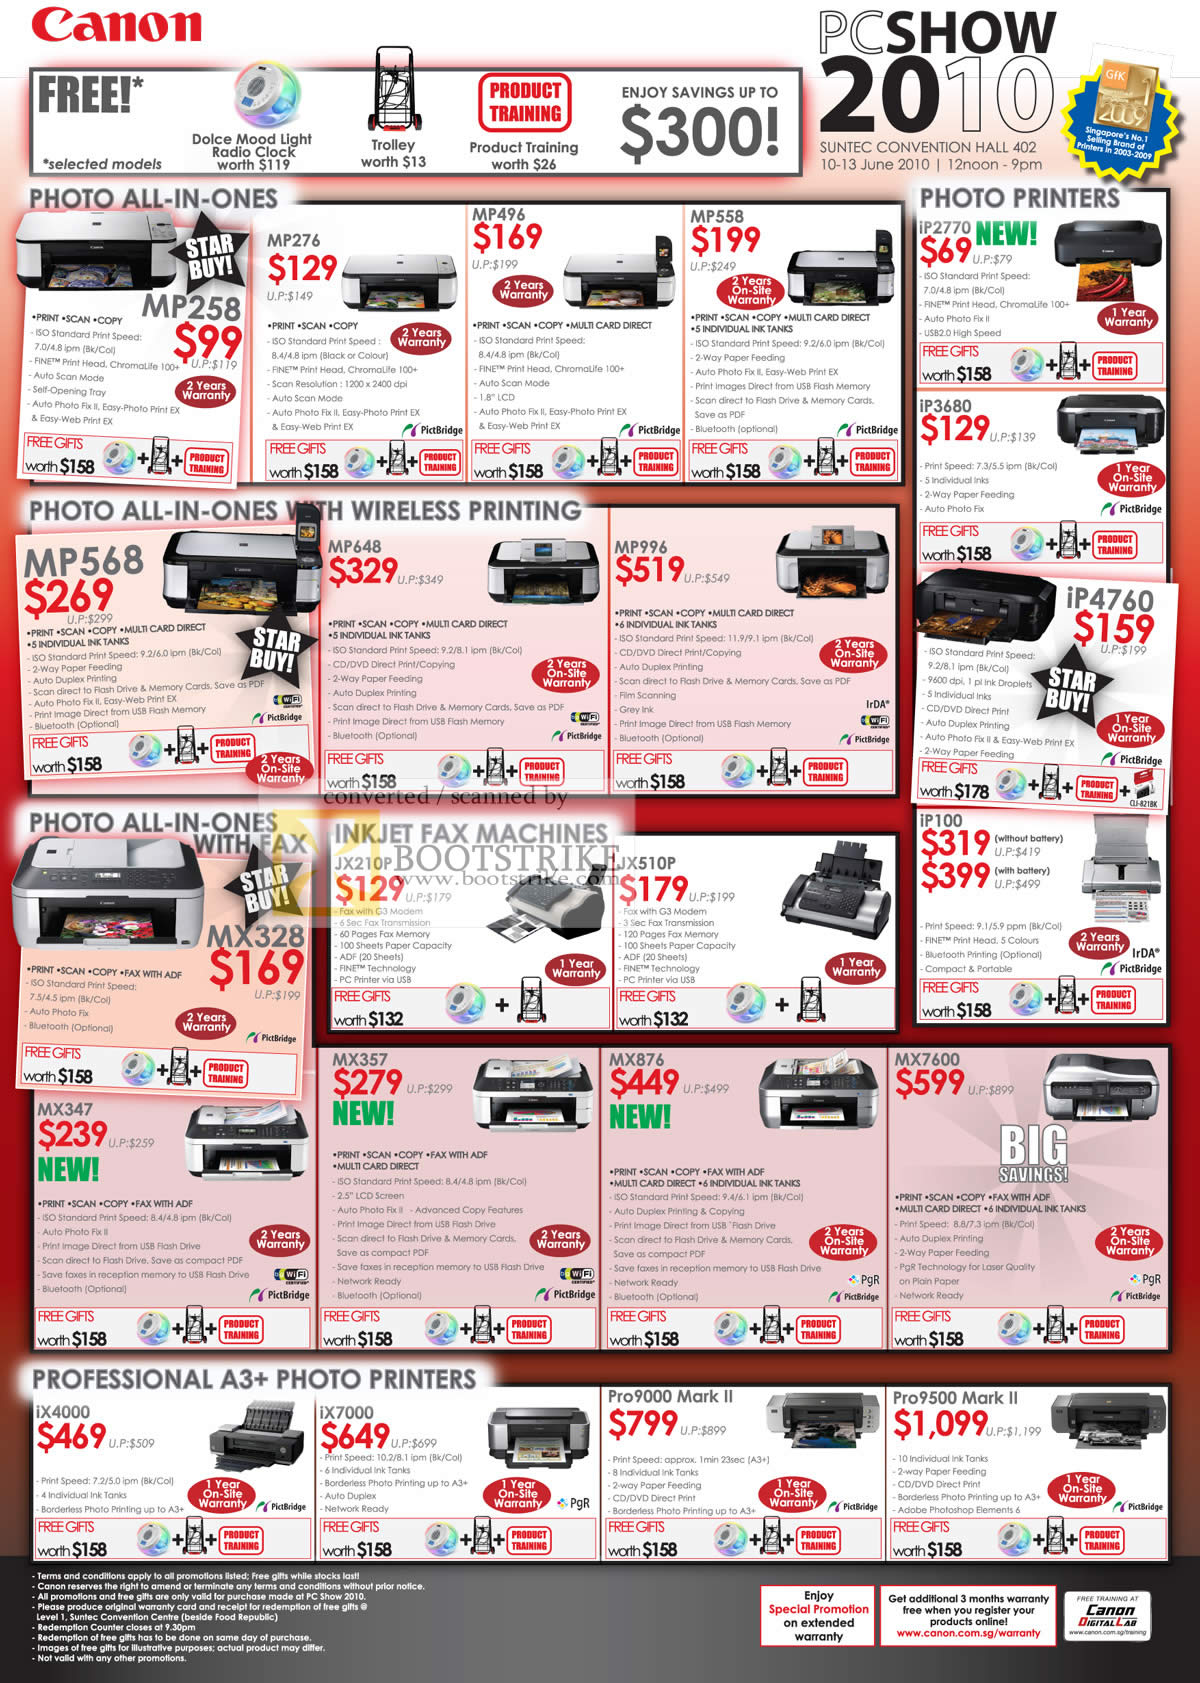 PC Show 2010 price list image brochure of Canon Printers Photo MP258 MP276 MP496 MP558 I 2770 MP5568 MX328 A3 Professional Ix4000